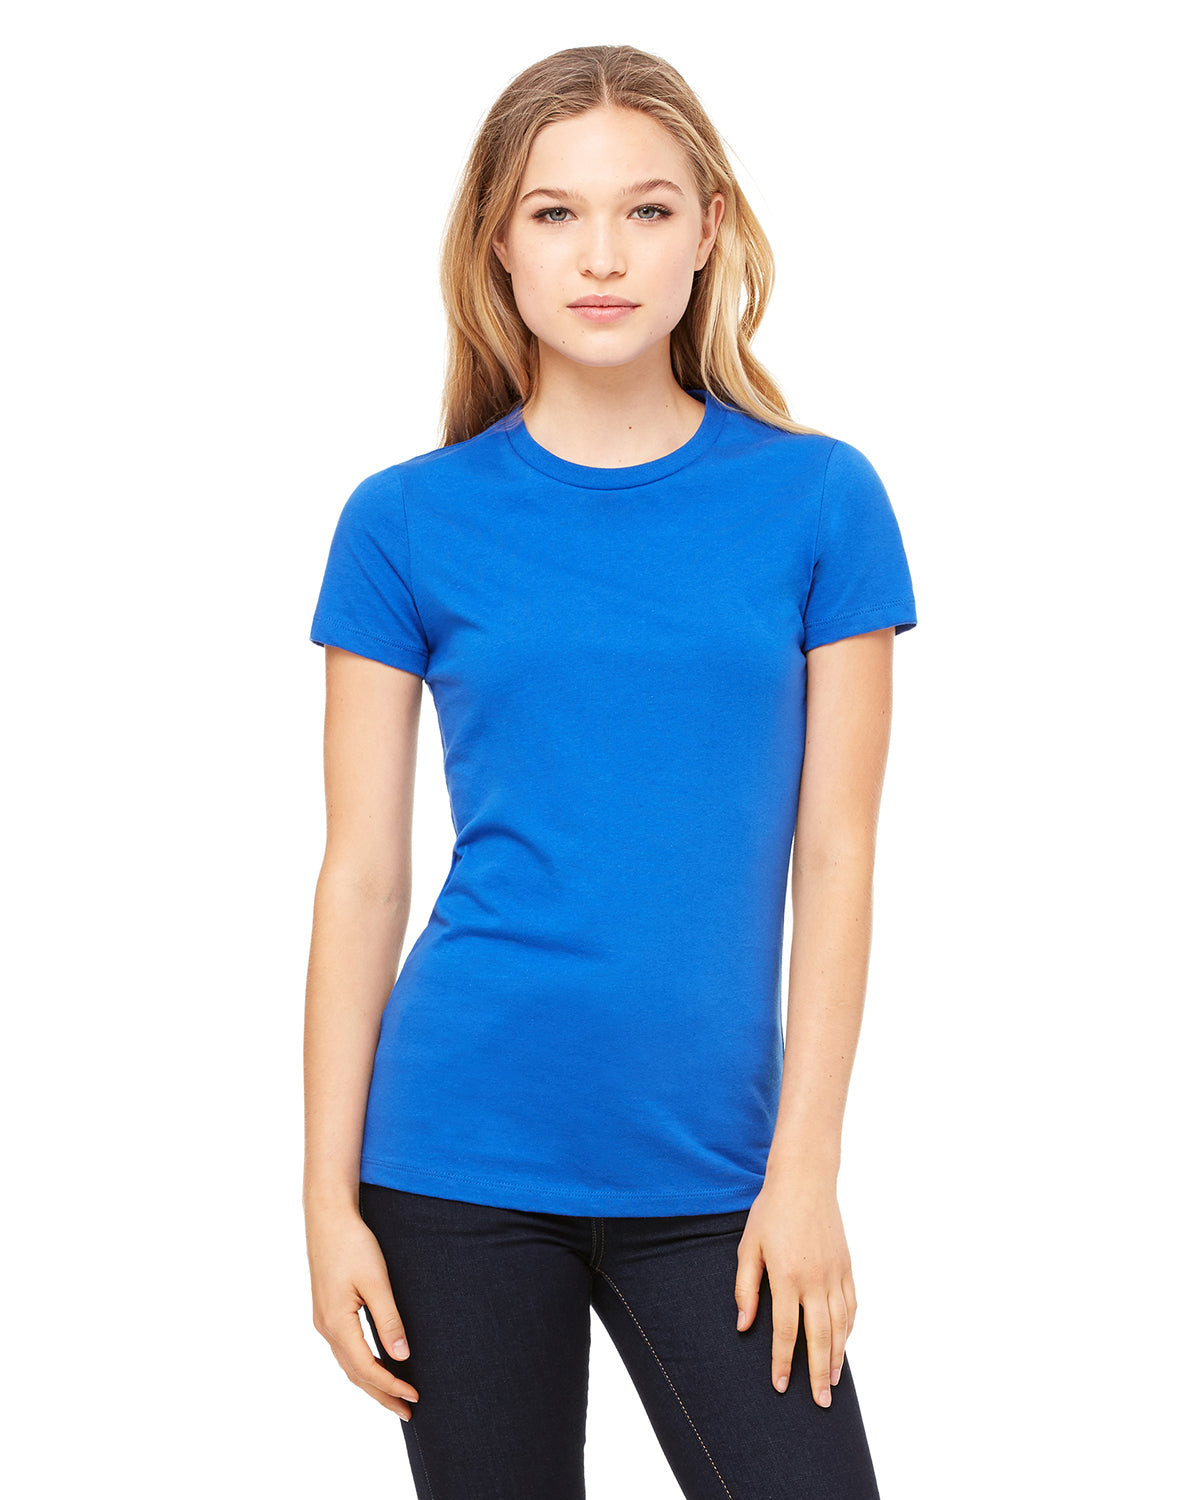 3001C - Bella + Canvas Unisex Jersey Short-Sleeve T-Shirt